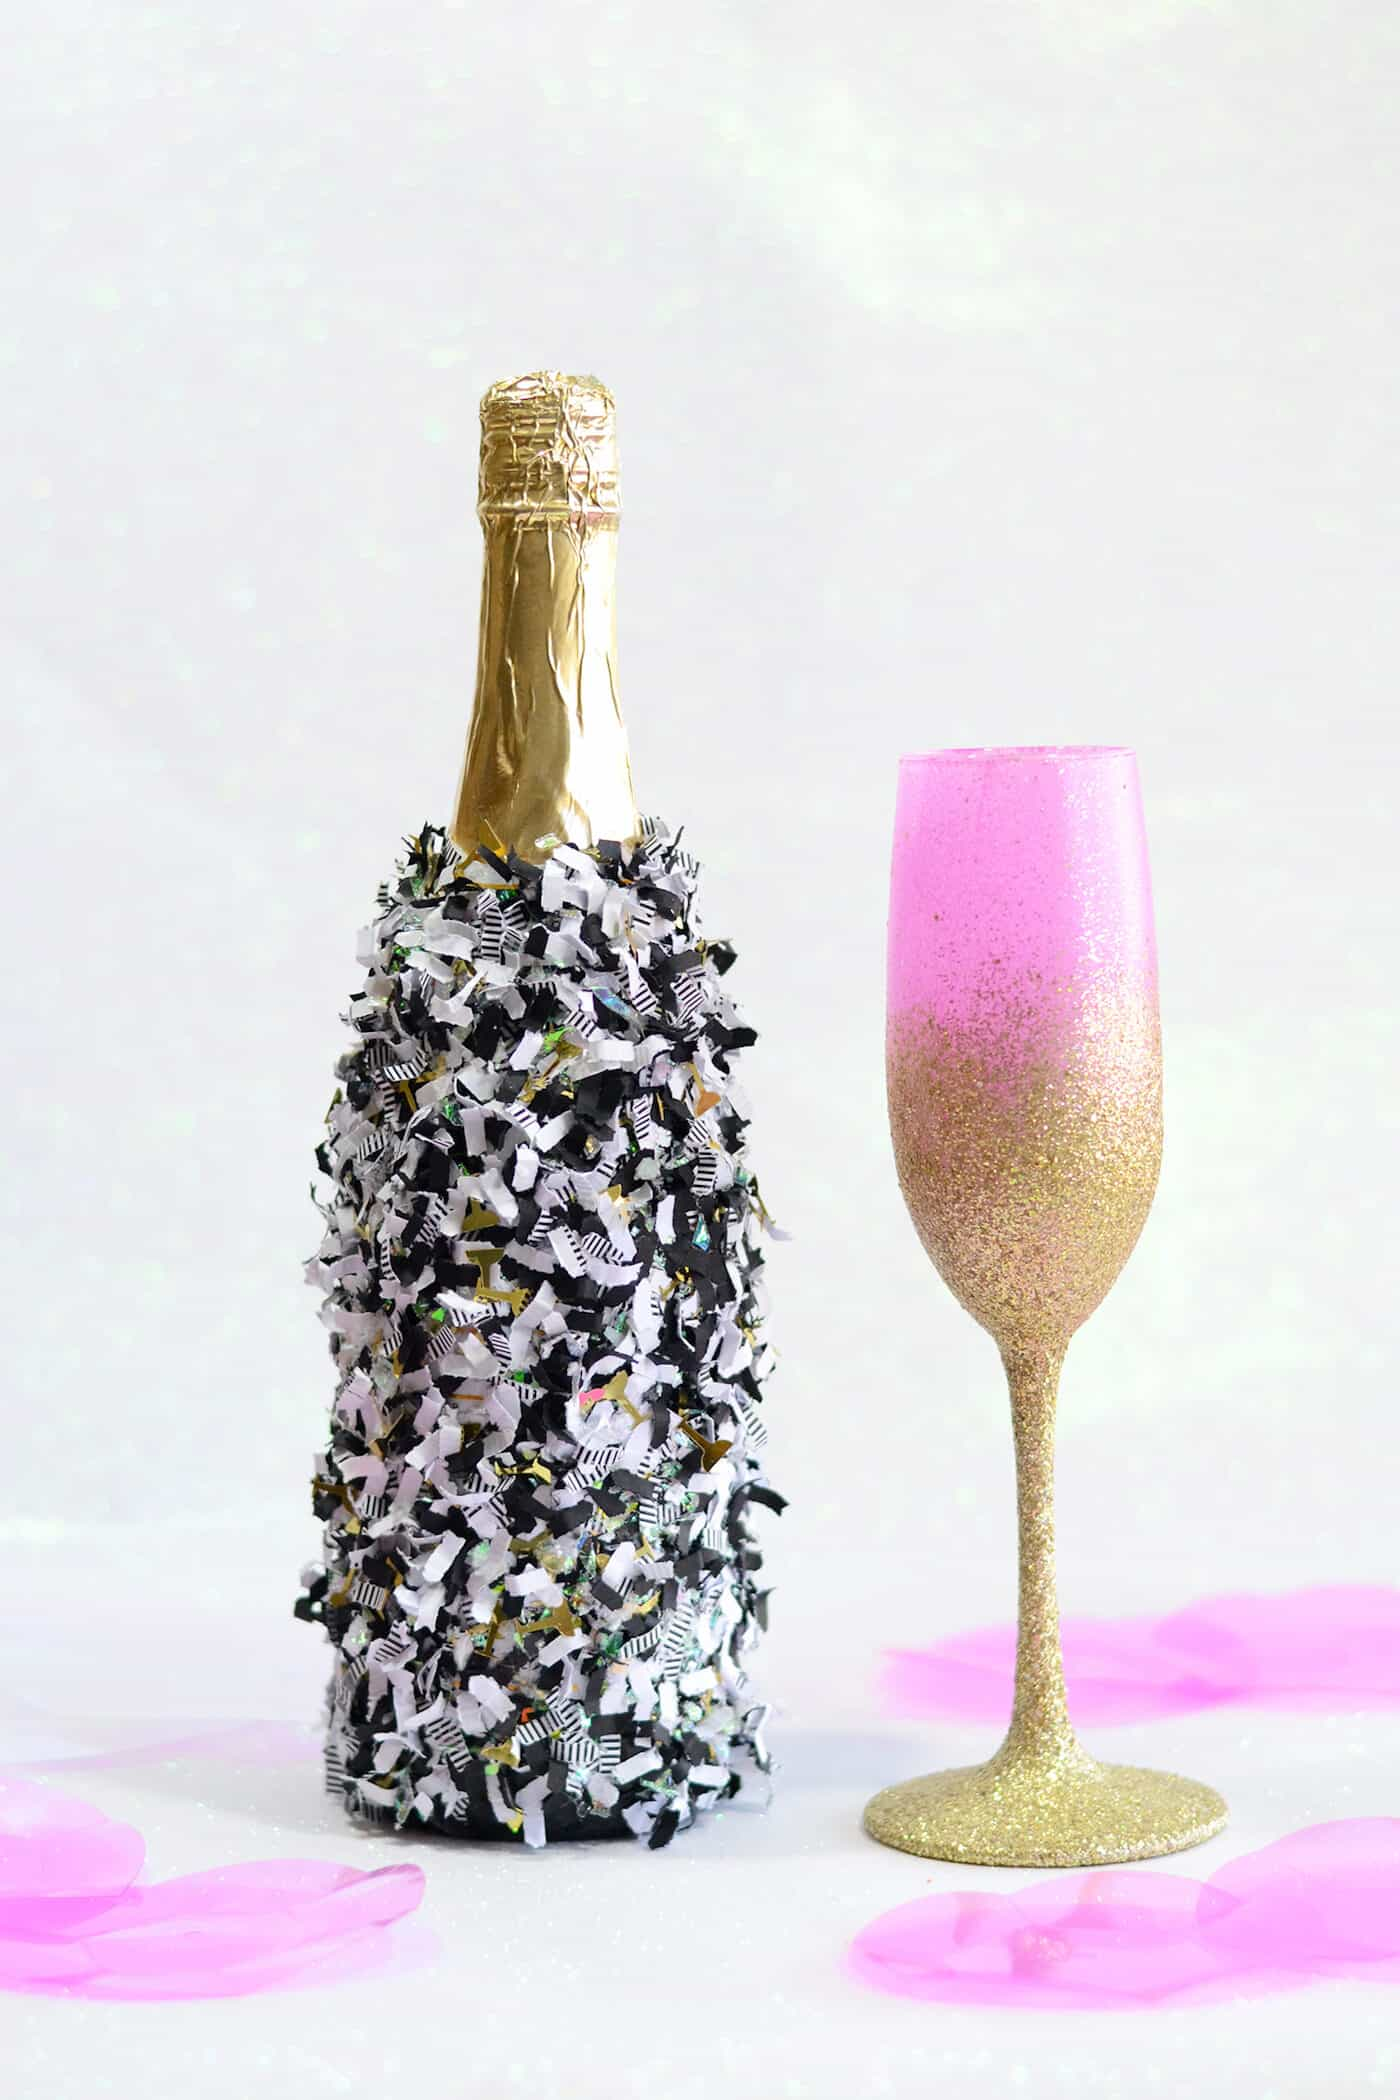 Glitter Mini Champagne Bottles - for Party or Wedding! - Mod Podge Rocks